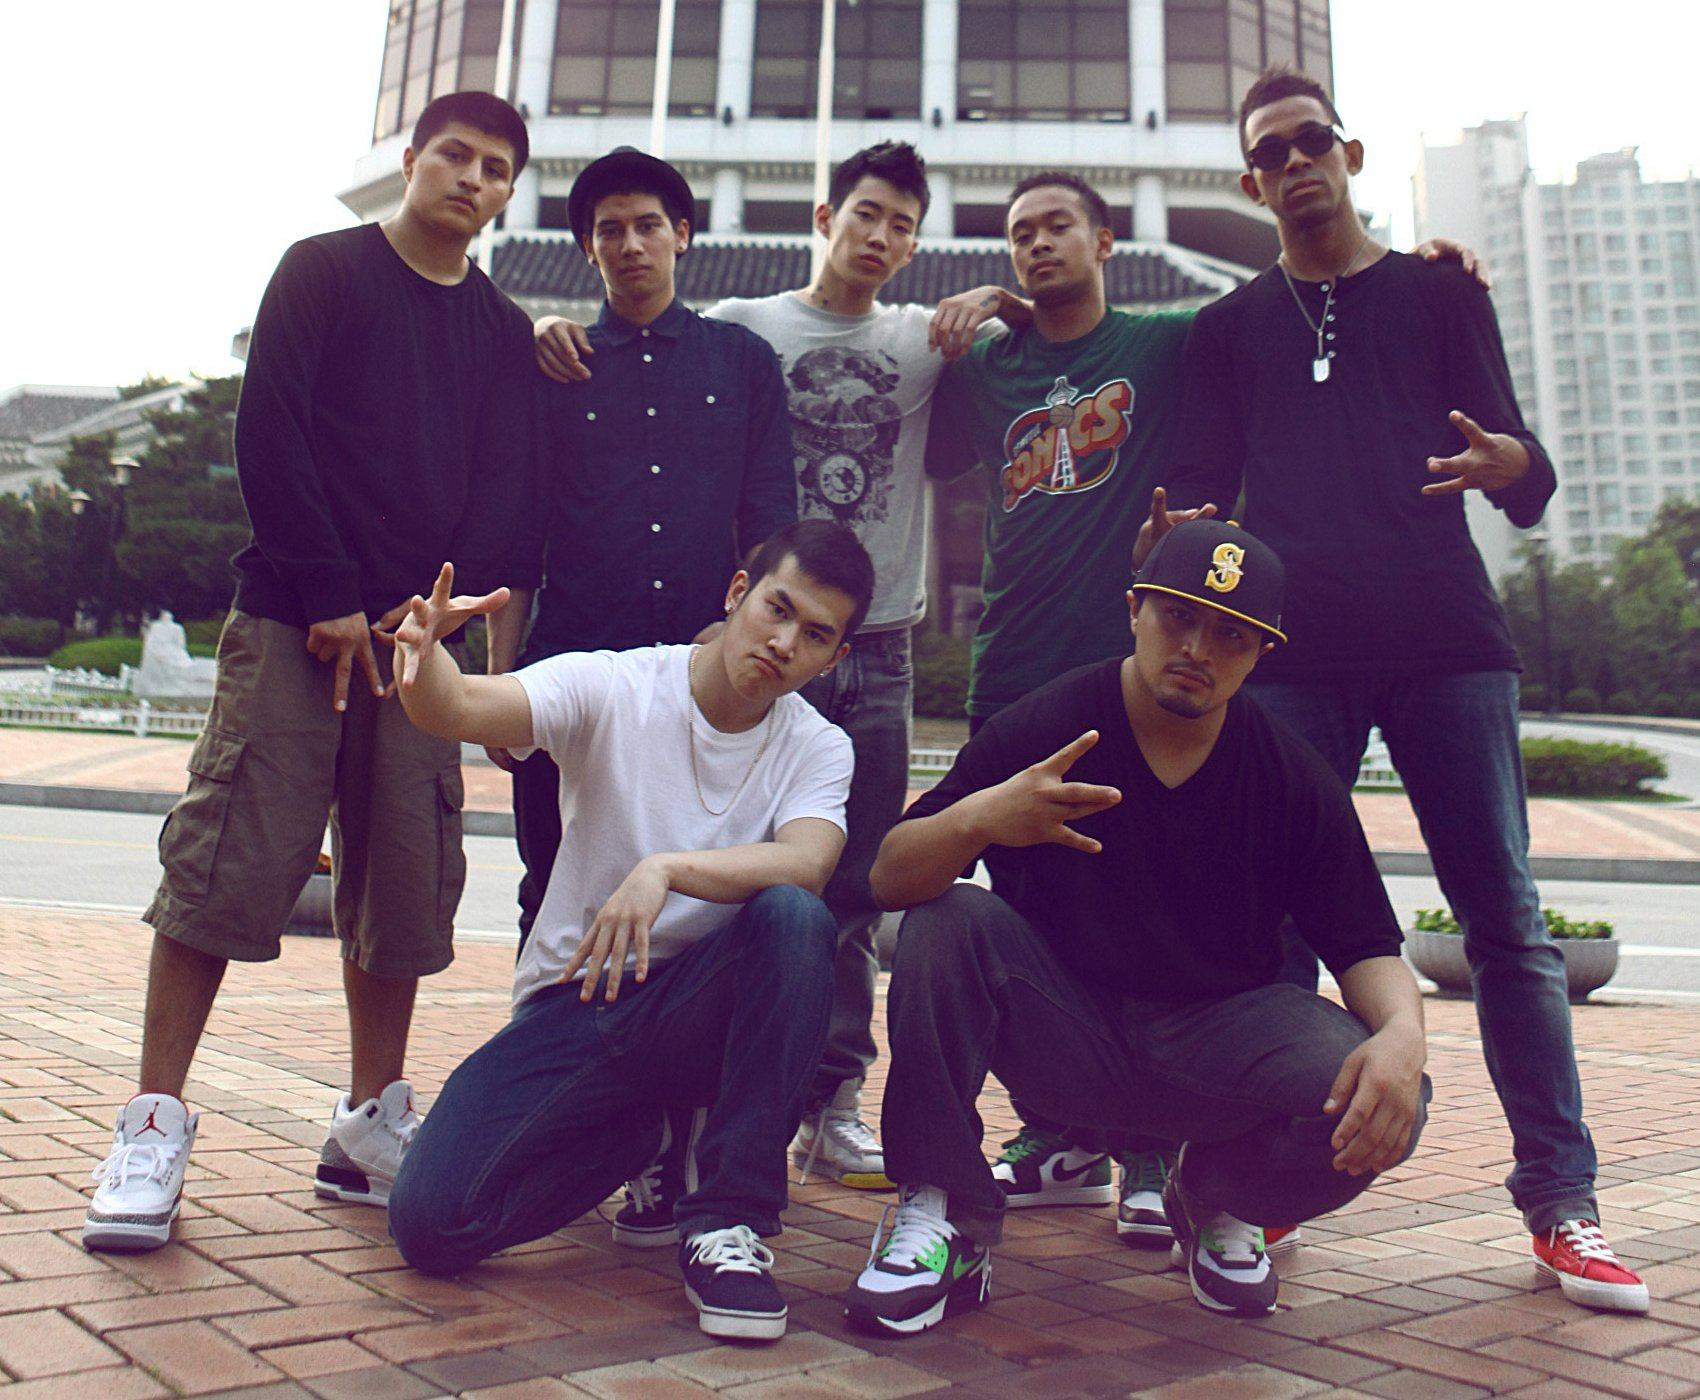 Jay Park and the members of the bboy crew he belongs to, Art of Movement, in 2012.